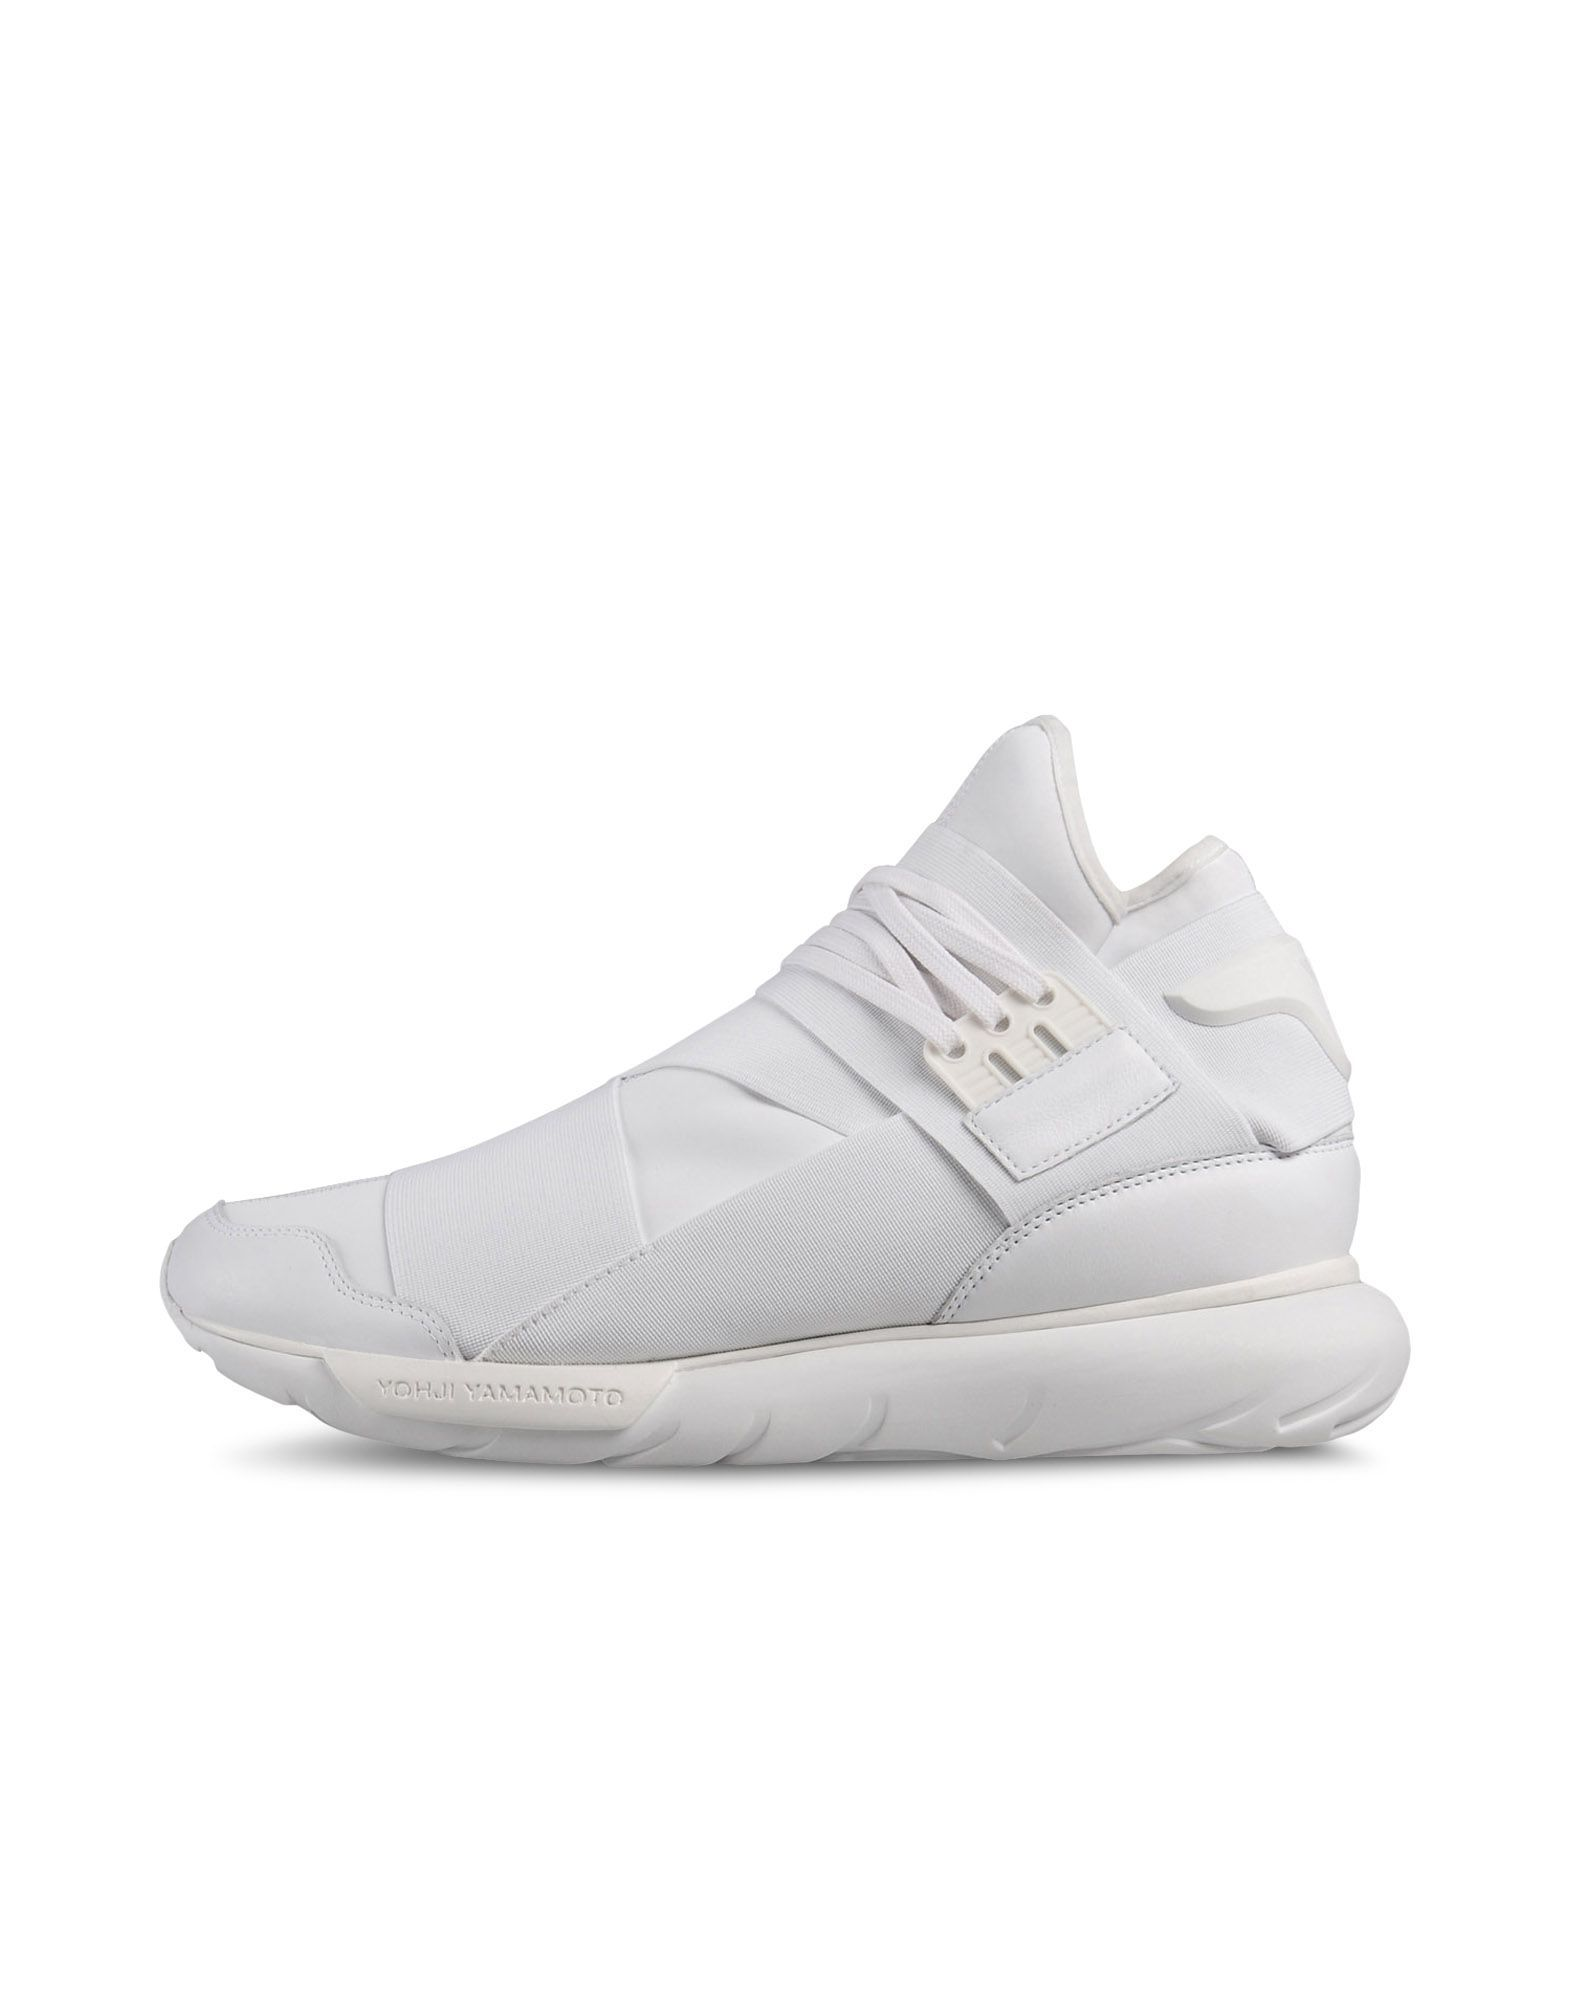 64de50856a Y-3 QASA HIGH Shoes unisex Y-3 adidas | Everything is important ...